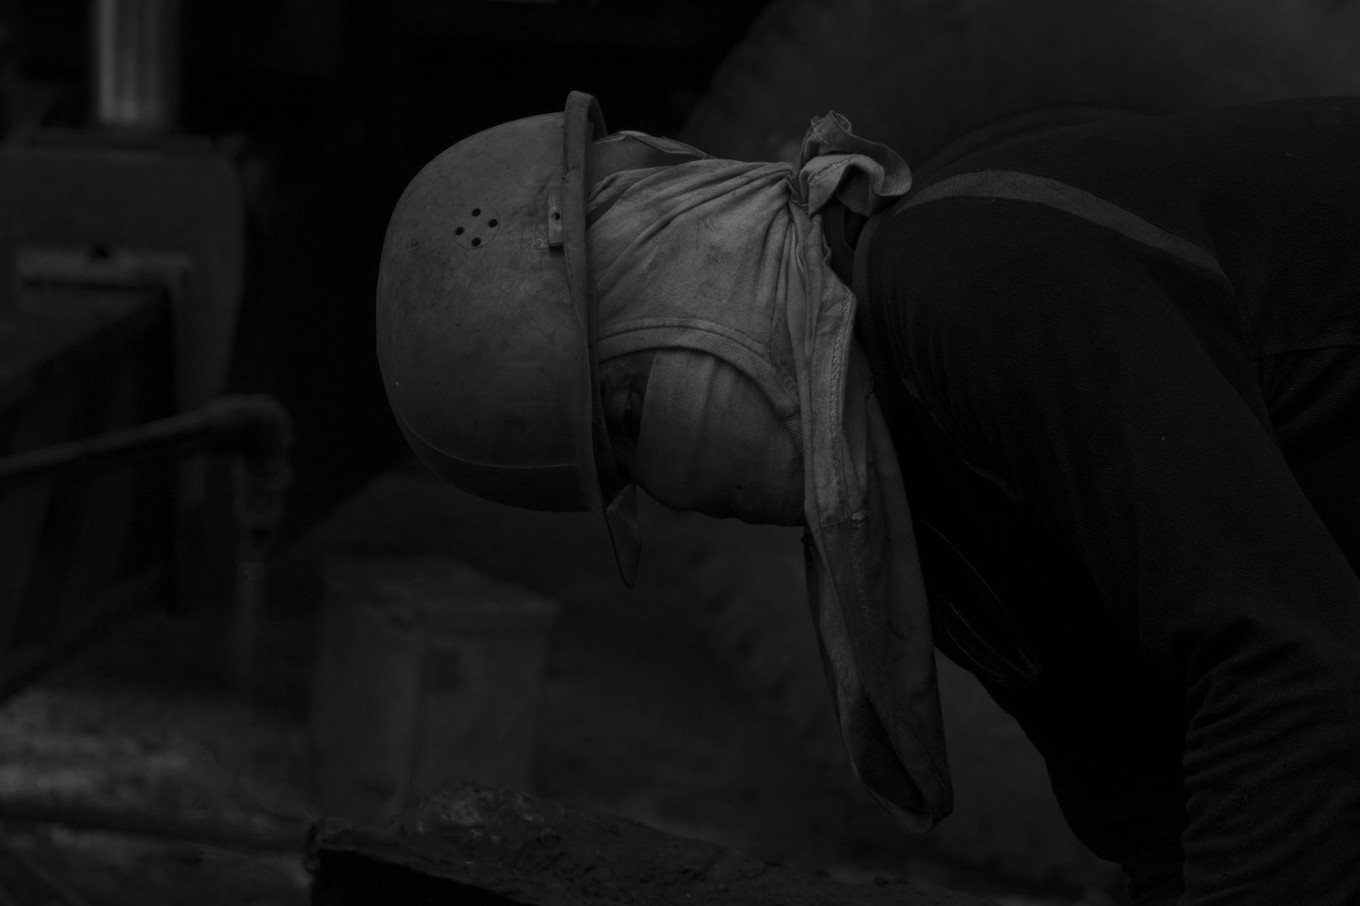 A worker observes his surroundings before cutting iron with a welding tool so as not to endanger his colleagues. JP/Sigit Pamungkas